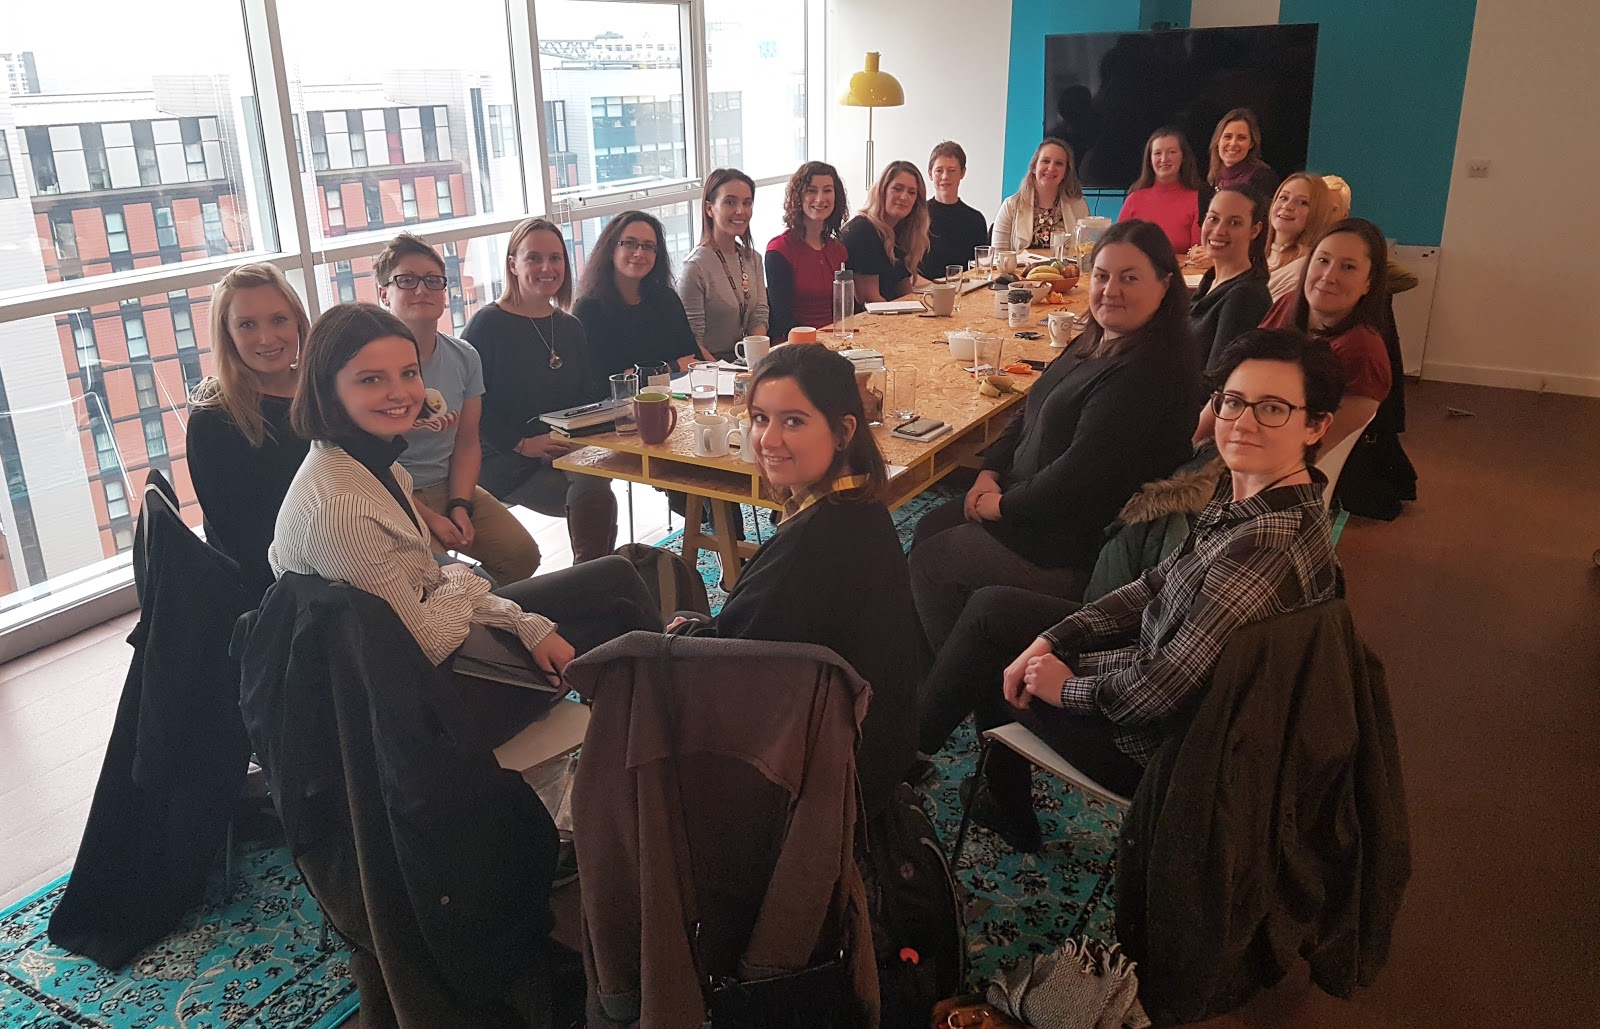 We ask Animated Women UK Scotland what motivated them to start a local chapter